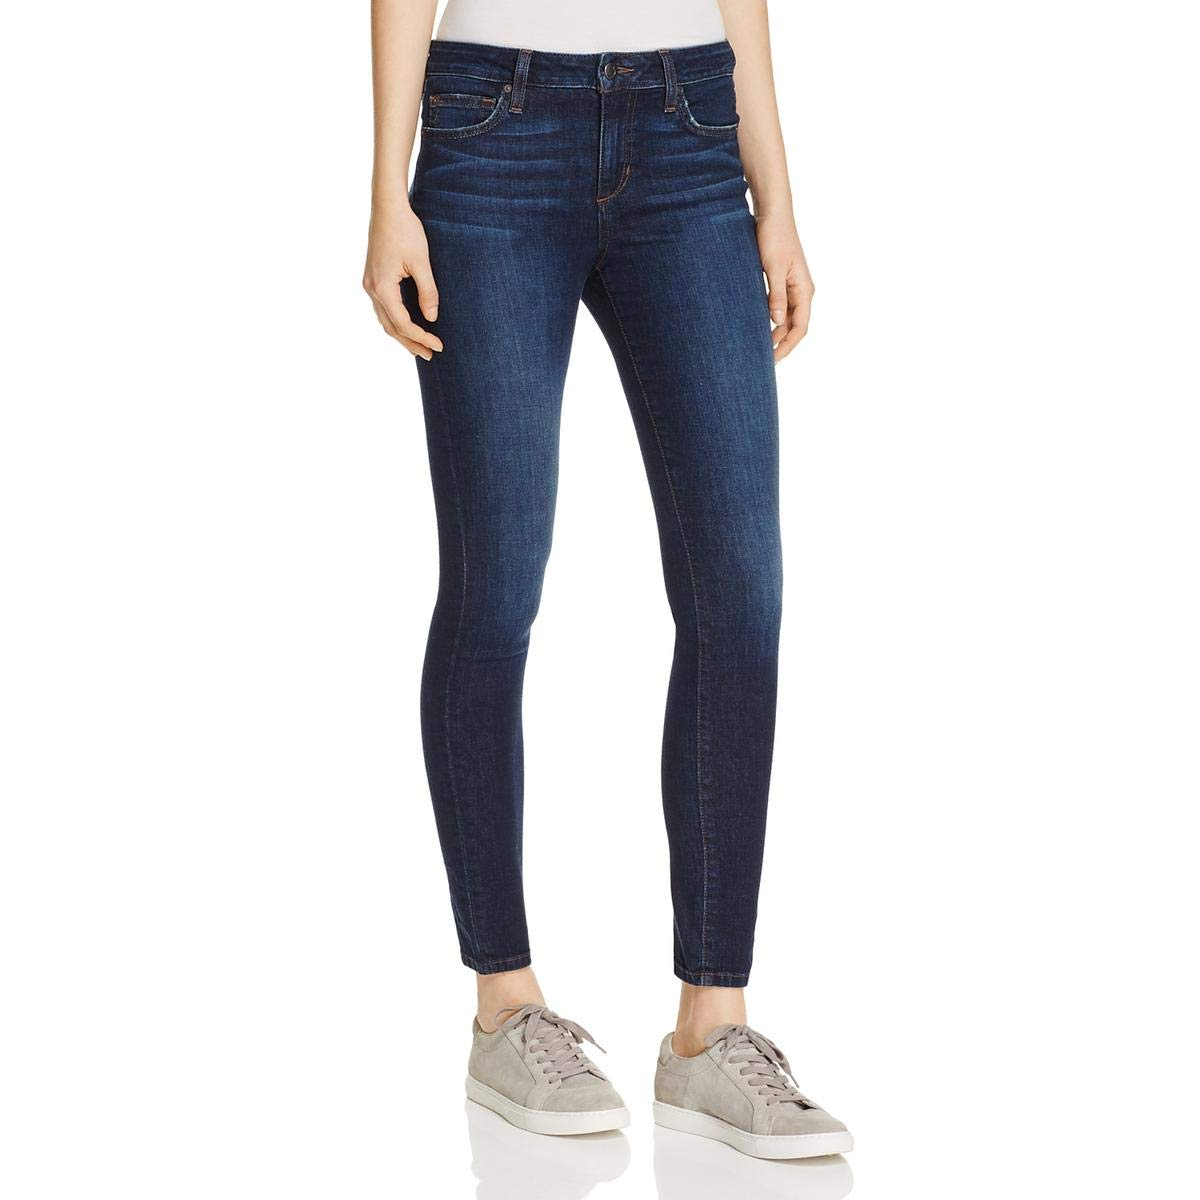 Joes Jeans Womens Evelyn Skinny Mid-Rise Ankle Jeans